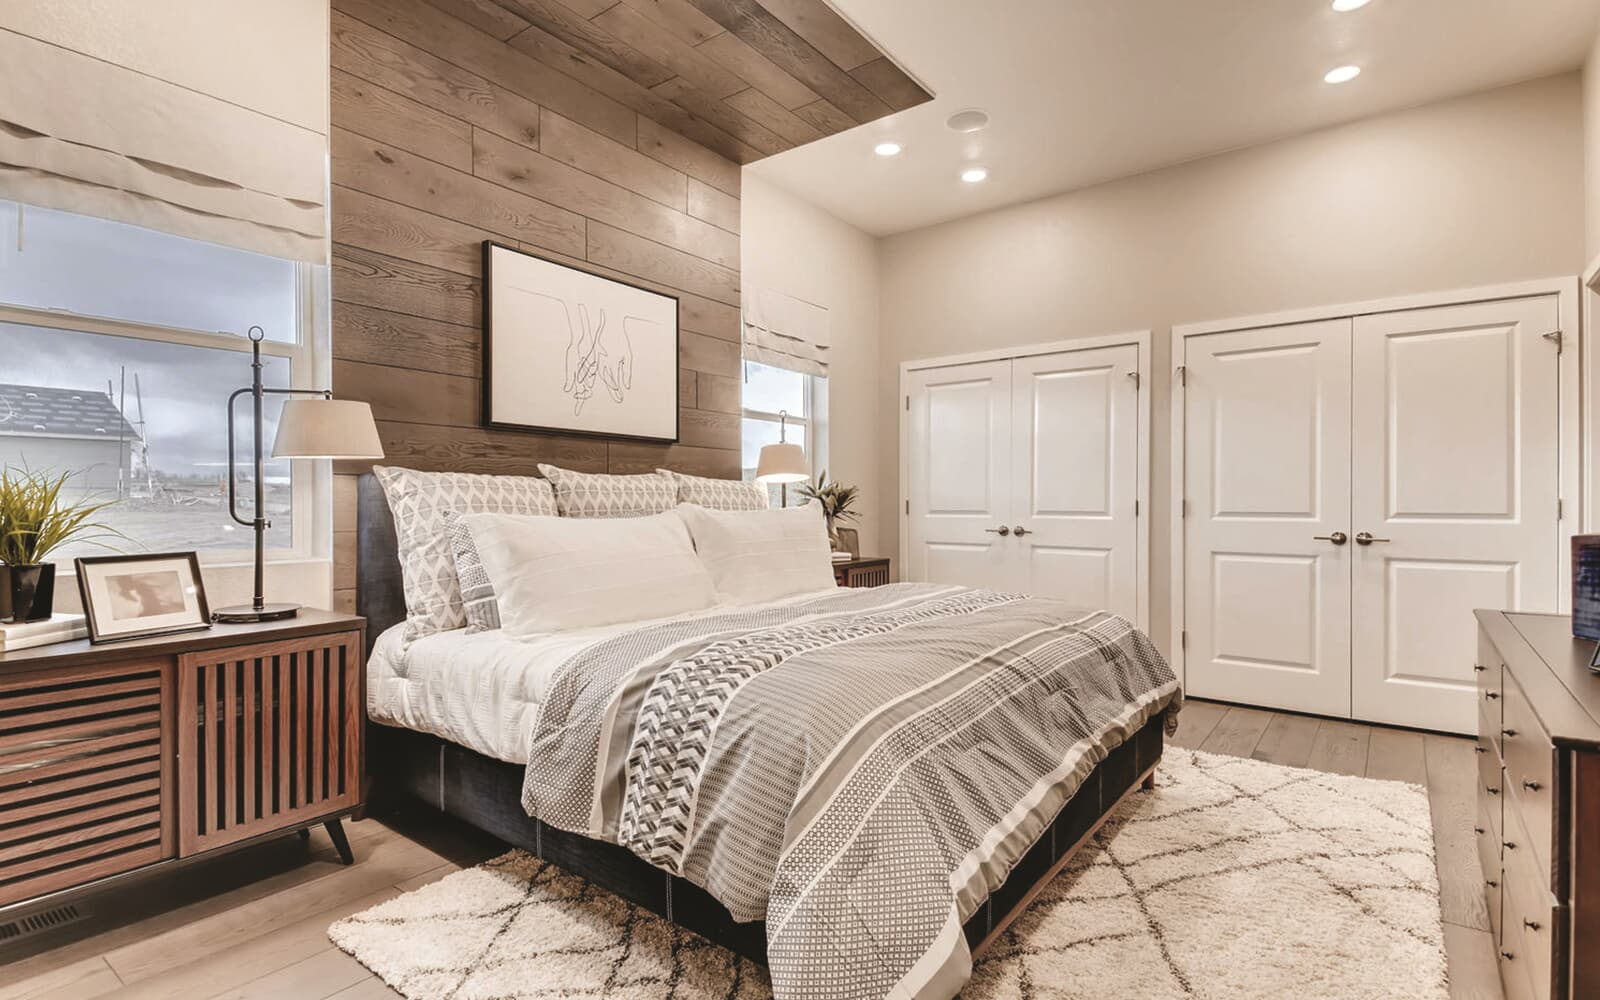 Villa-Three-Interior-Master-Bedroom-Barefoot-Lakes-Denver-Colorado